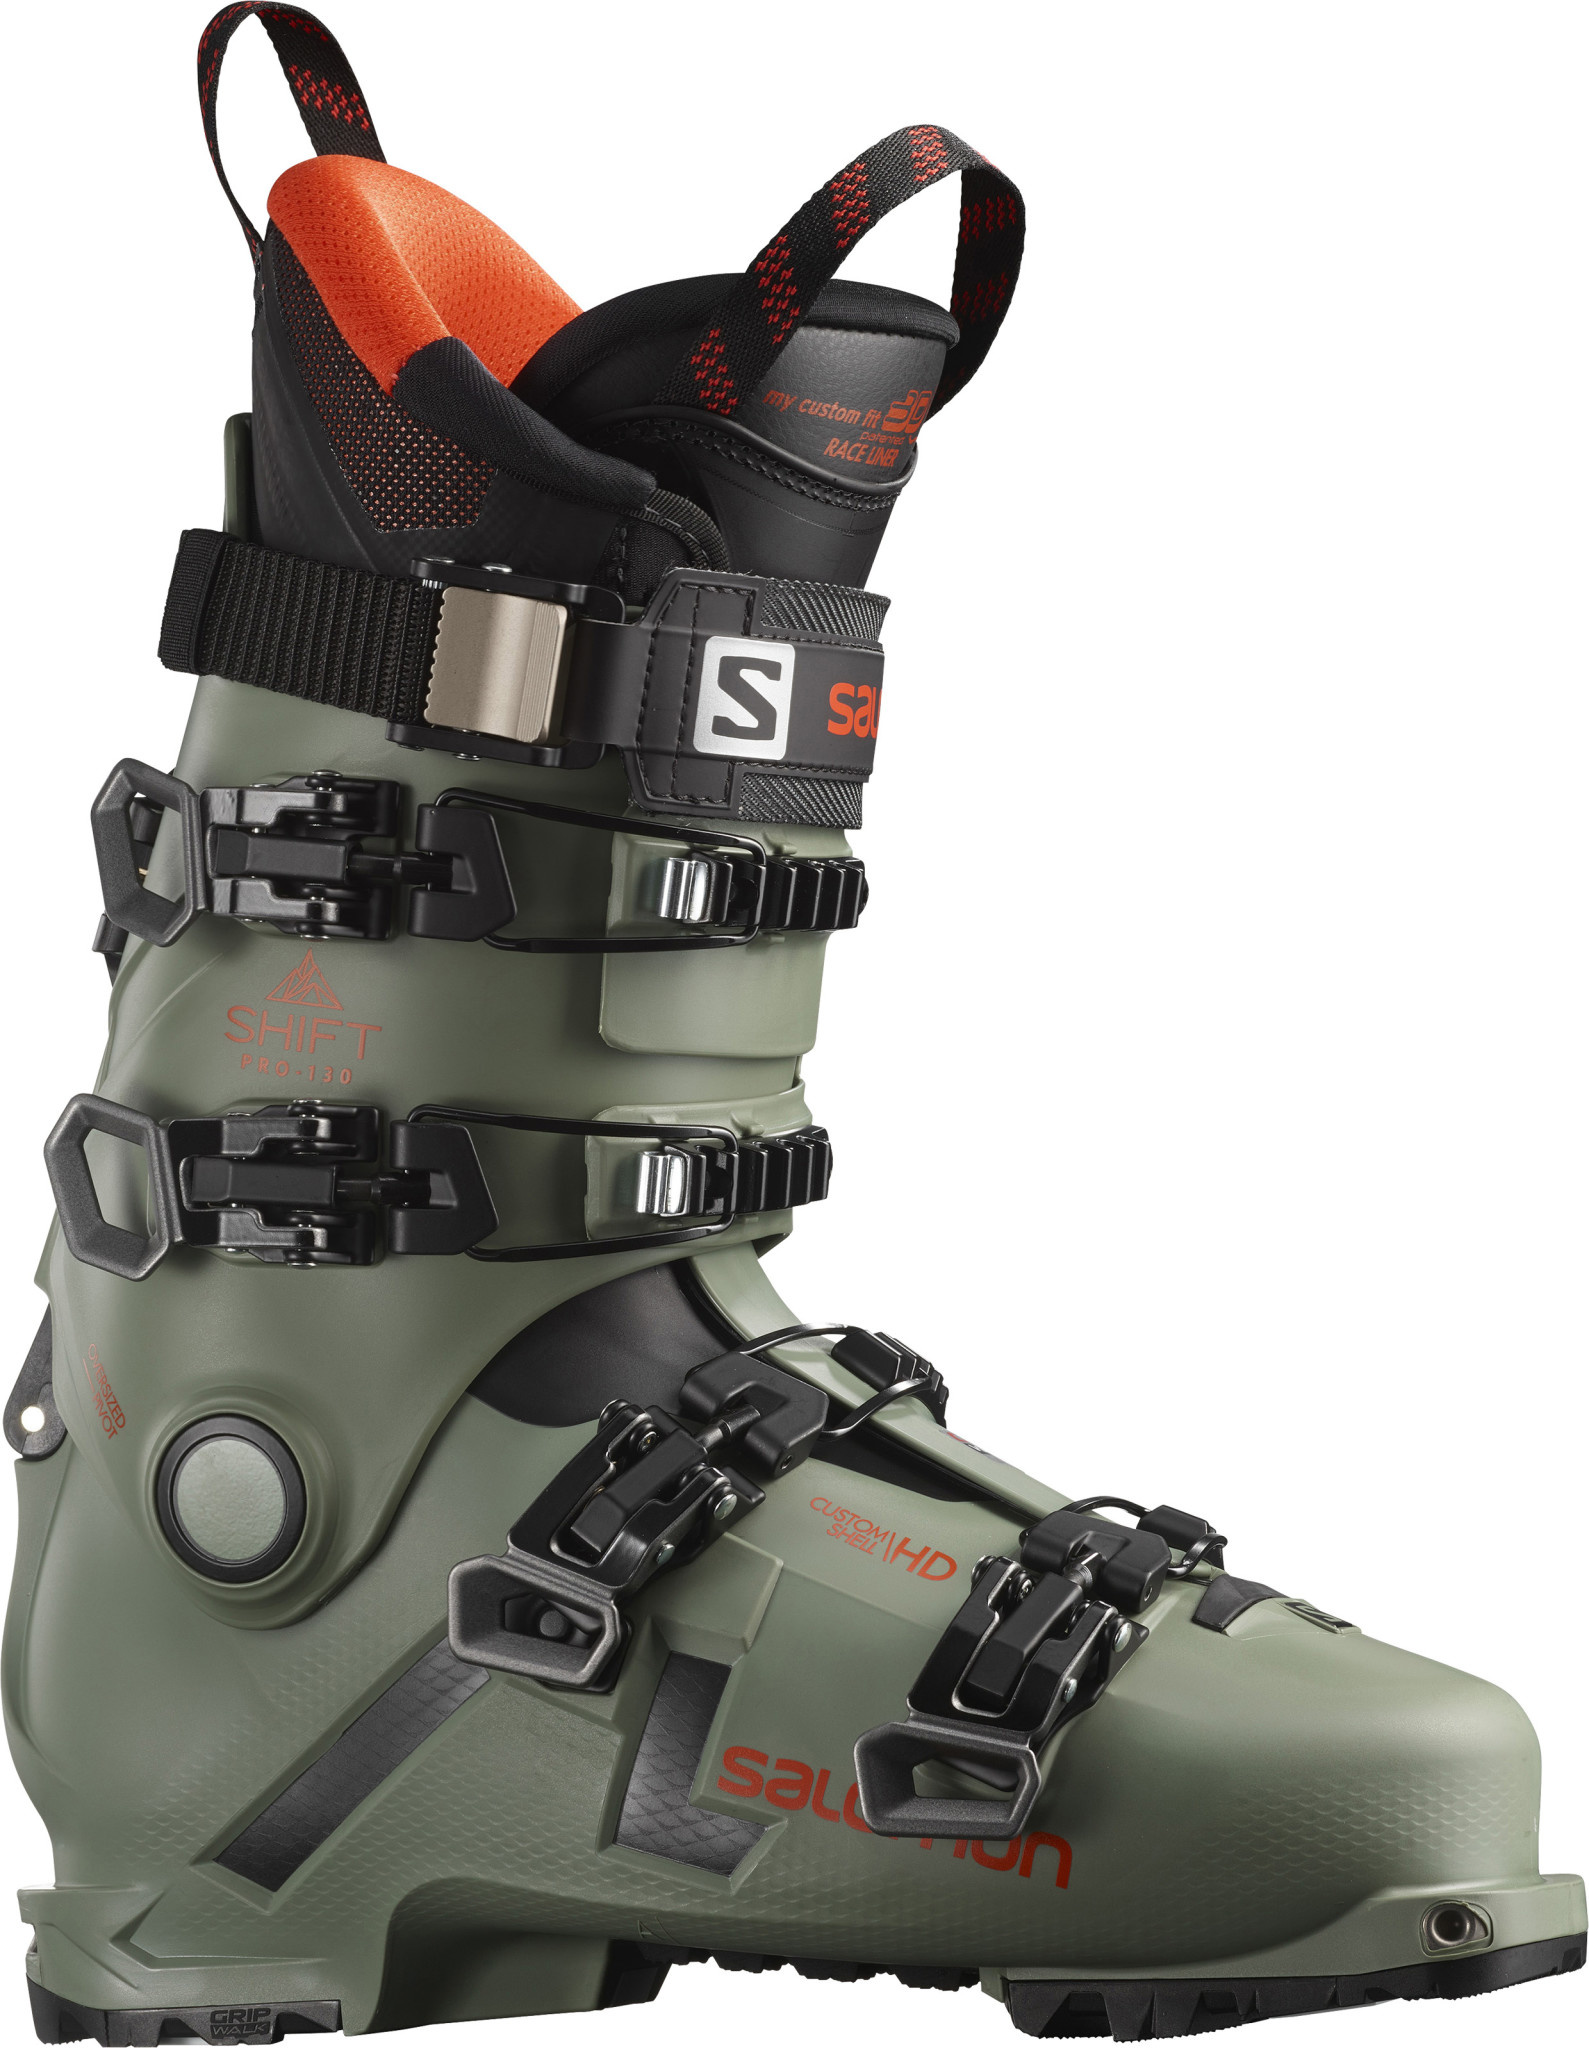 Salomon Shift Pro 130 At-1